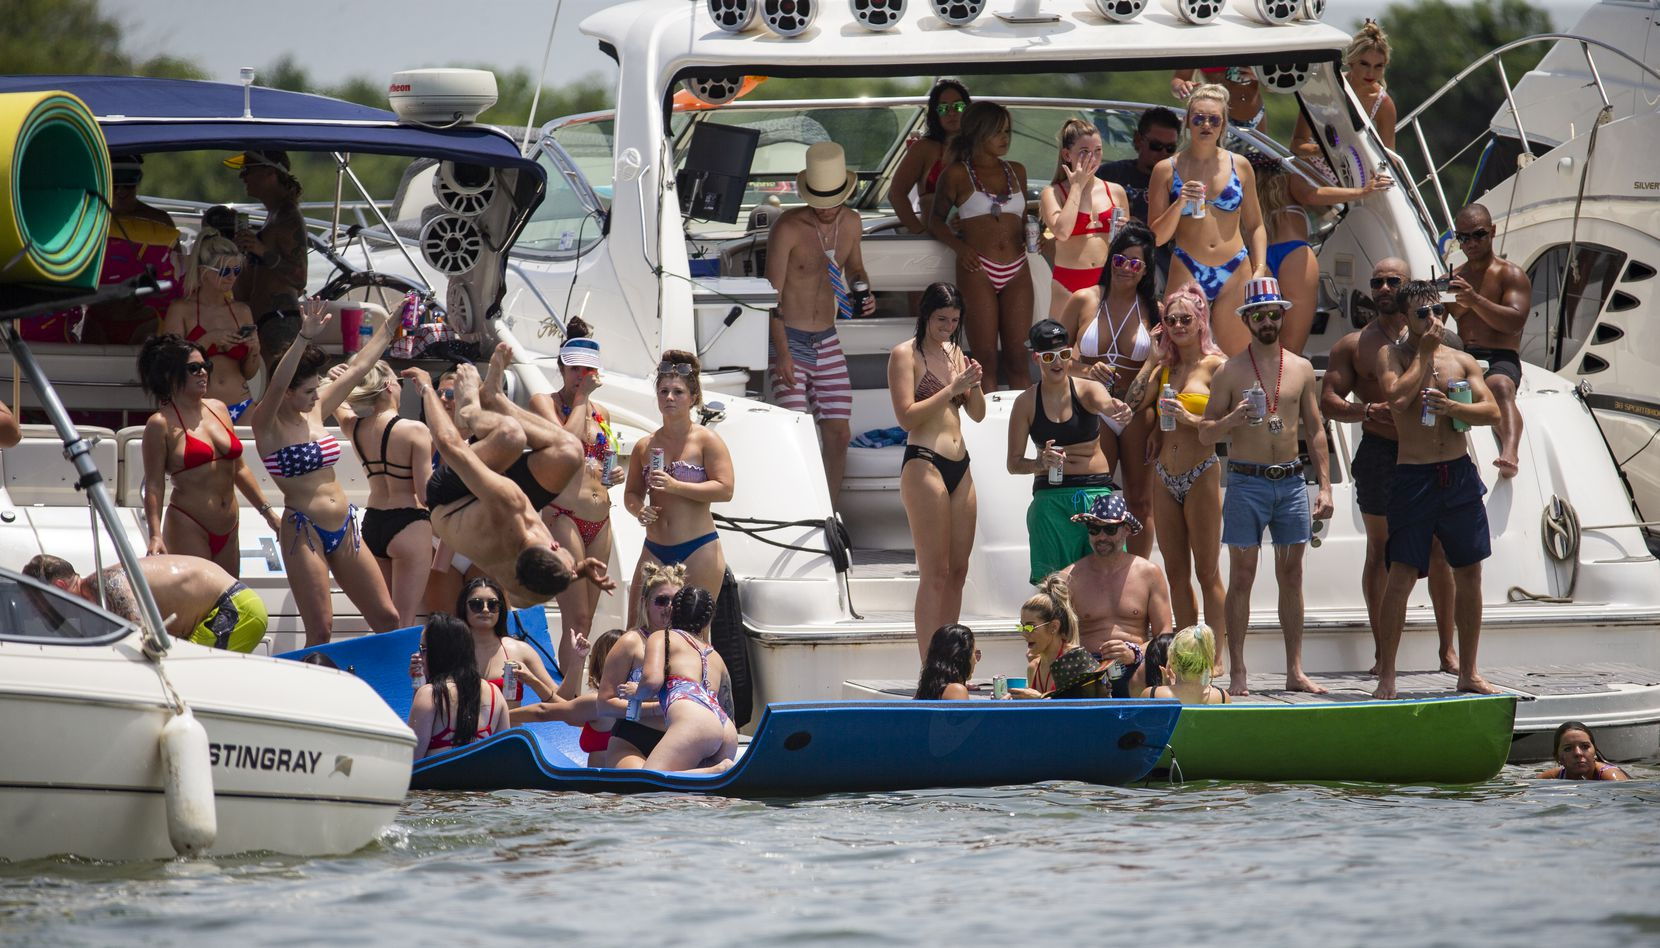 Partiers gathered en masse and without masks for Fourth of July fun under the sun at Lewisville Lake's Party Cove on Saturday.